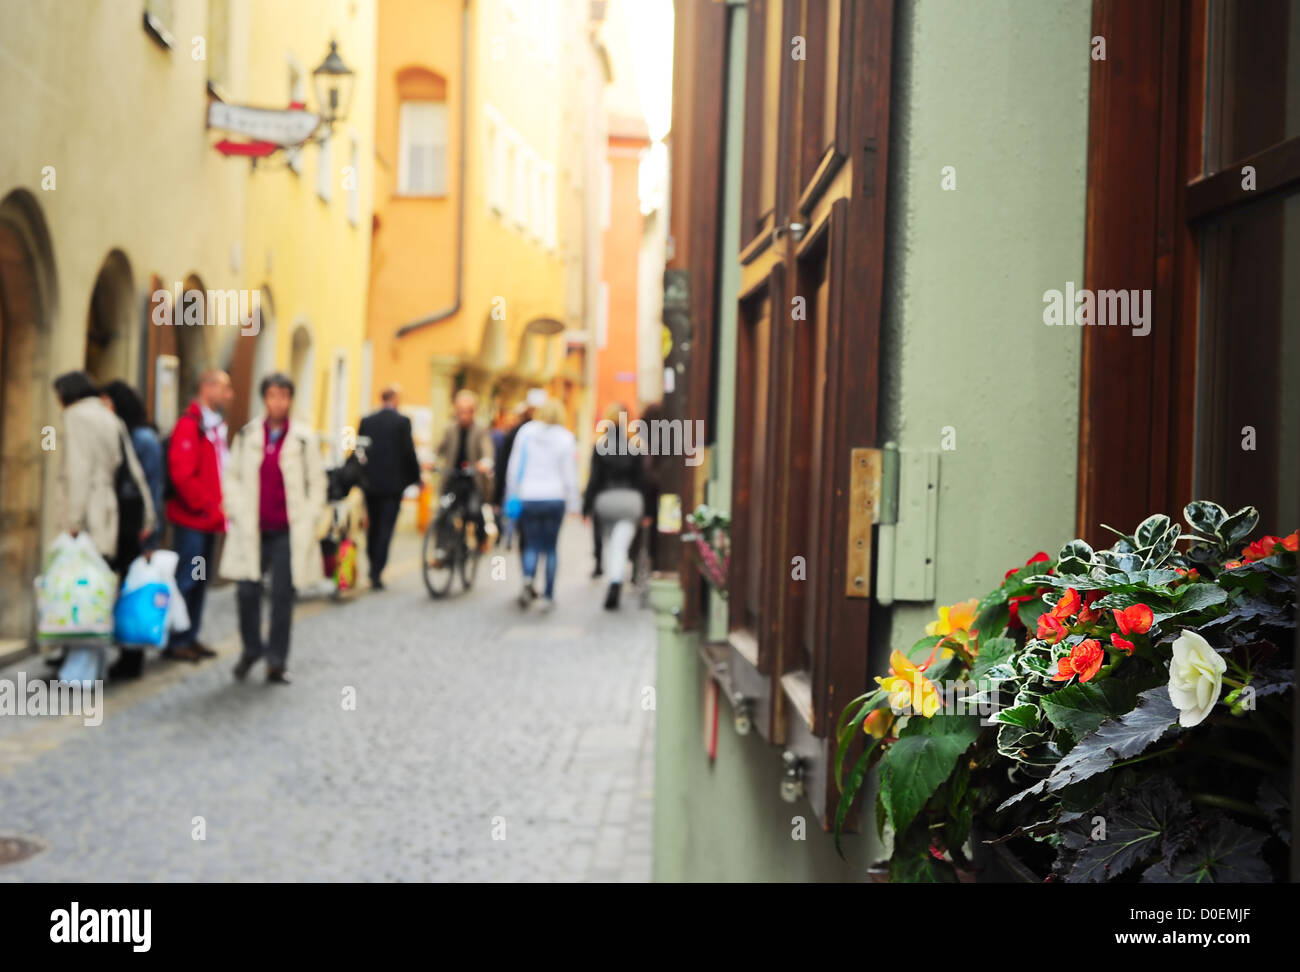 Flowers on the windowsill in Regensburg old town, Germany - Stock Image